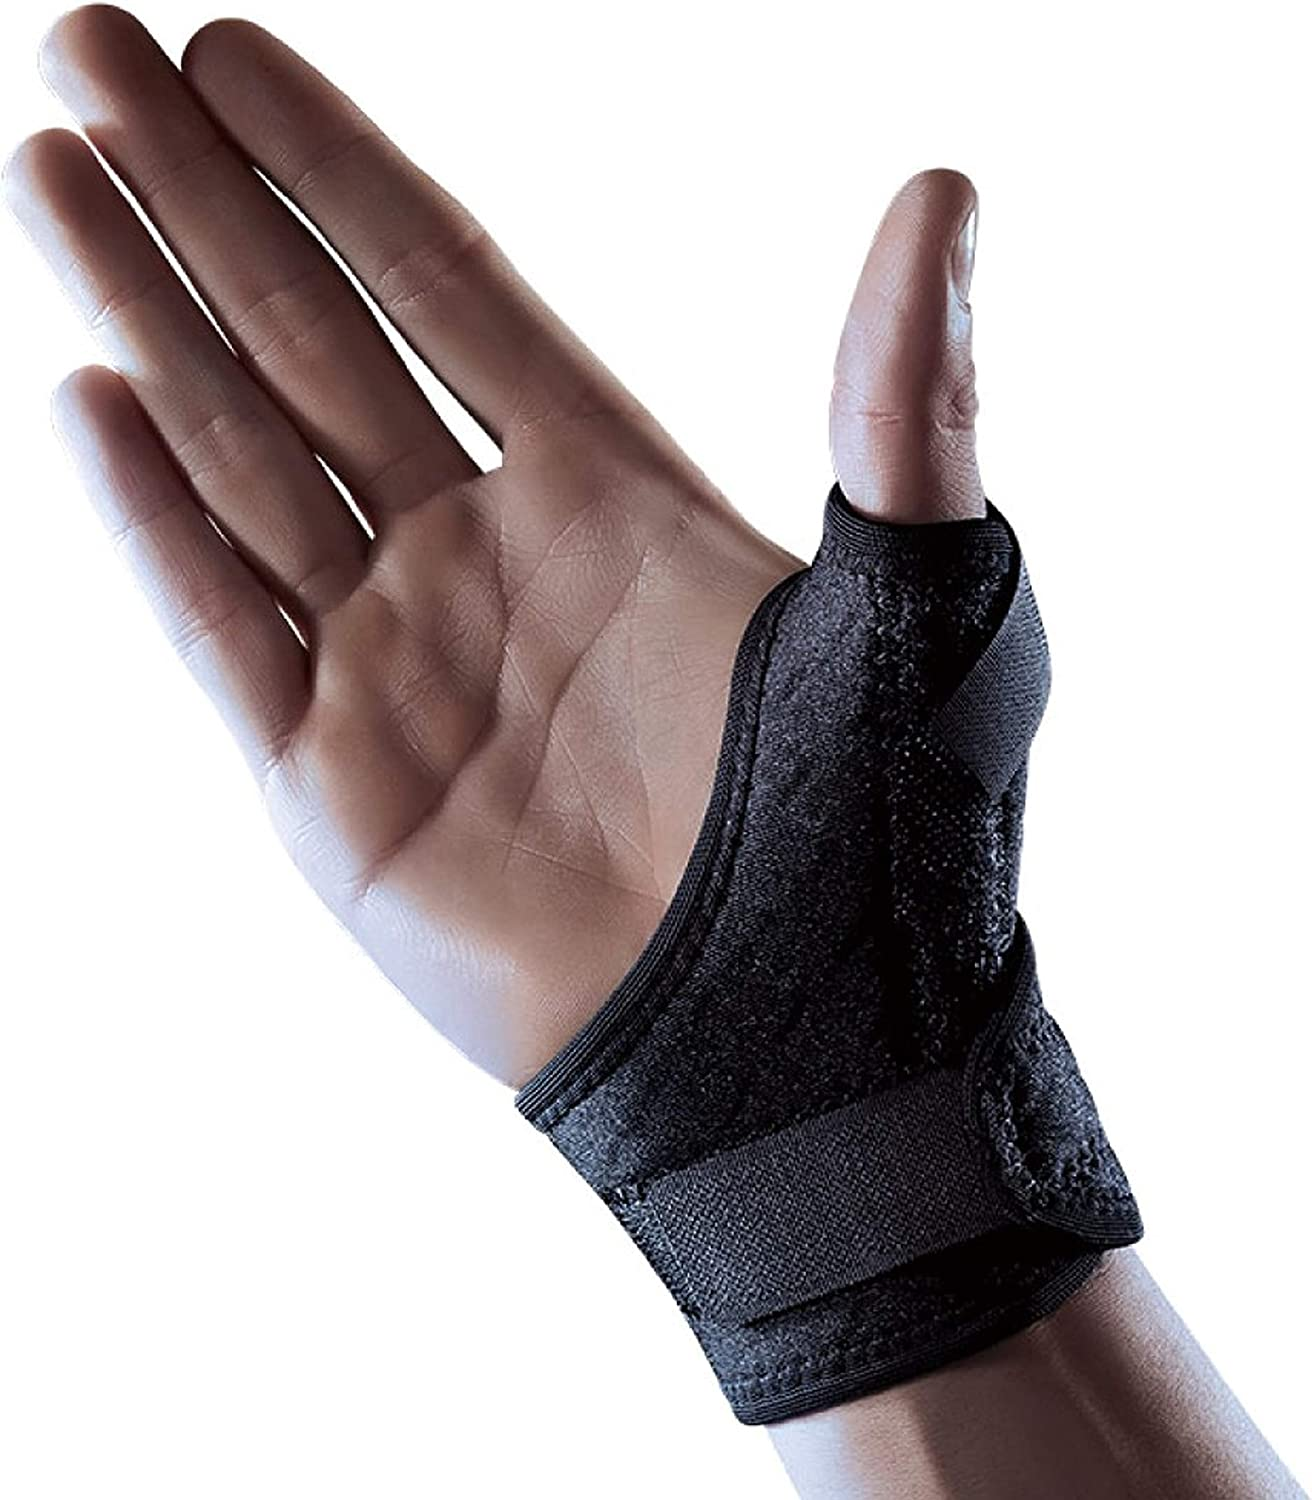 LP Support 563CA Thumb Bandage - Thumb Guard - Thumb Splint from the Extreme Series, tamaño:Universal - 1 par, color:negro